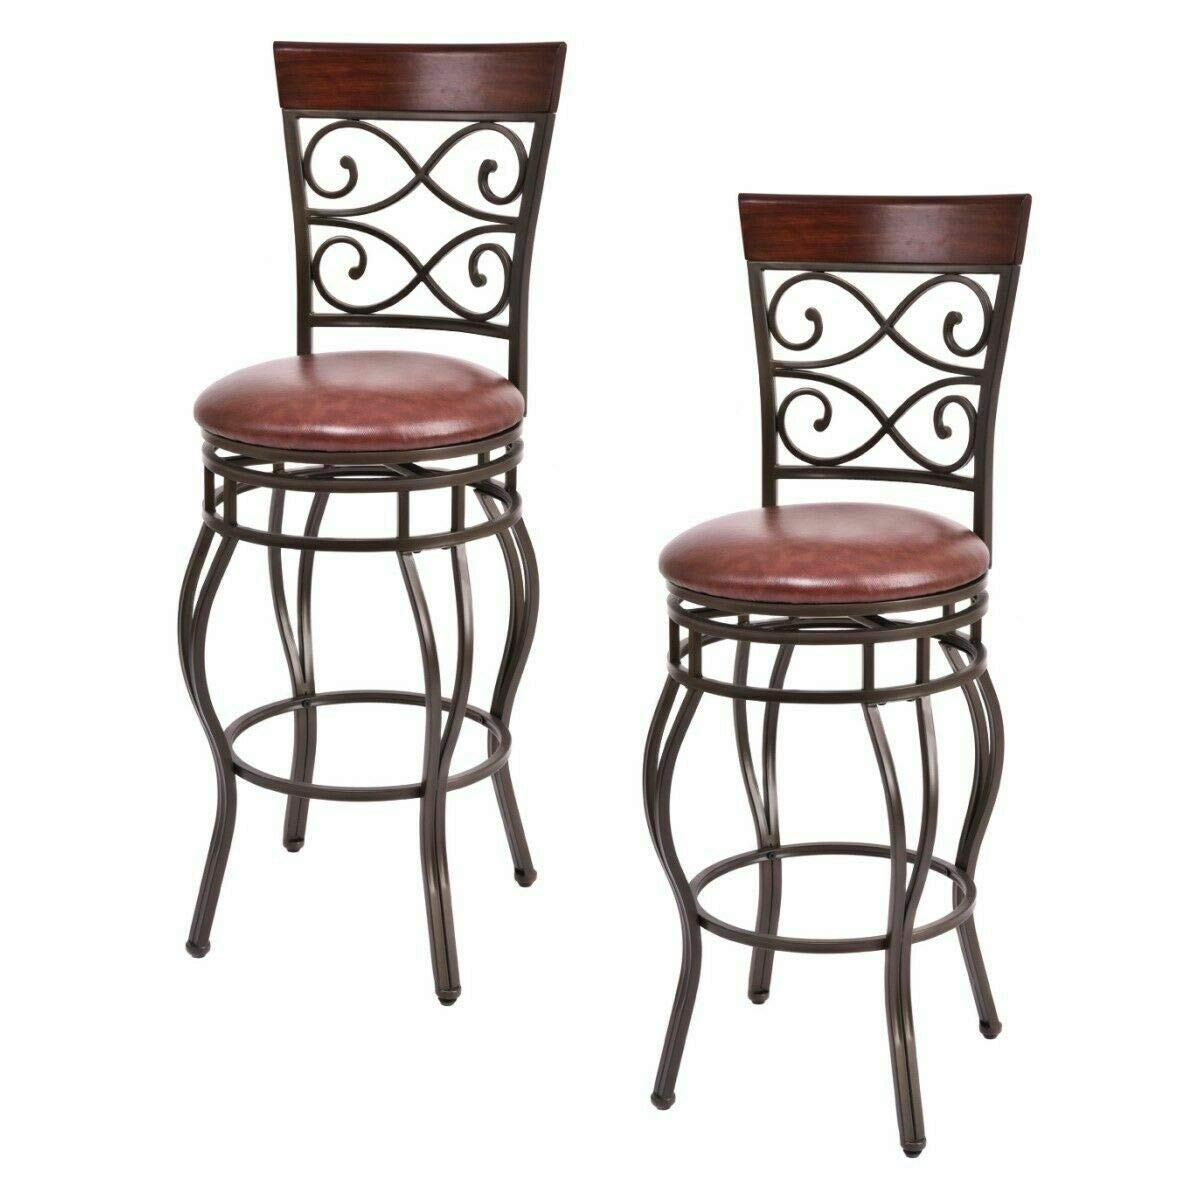 COSTWAY Bar Stools Set of 2, 360 Degree Swivel, 30'' Seat Height Bar Stools, w Leather Padded Seat Bistro Dining Kitchen Pub Metal Chairs (Set of 2) by COSTWAY